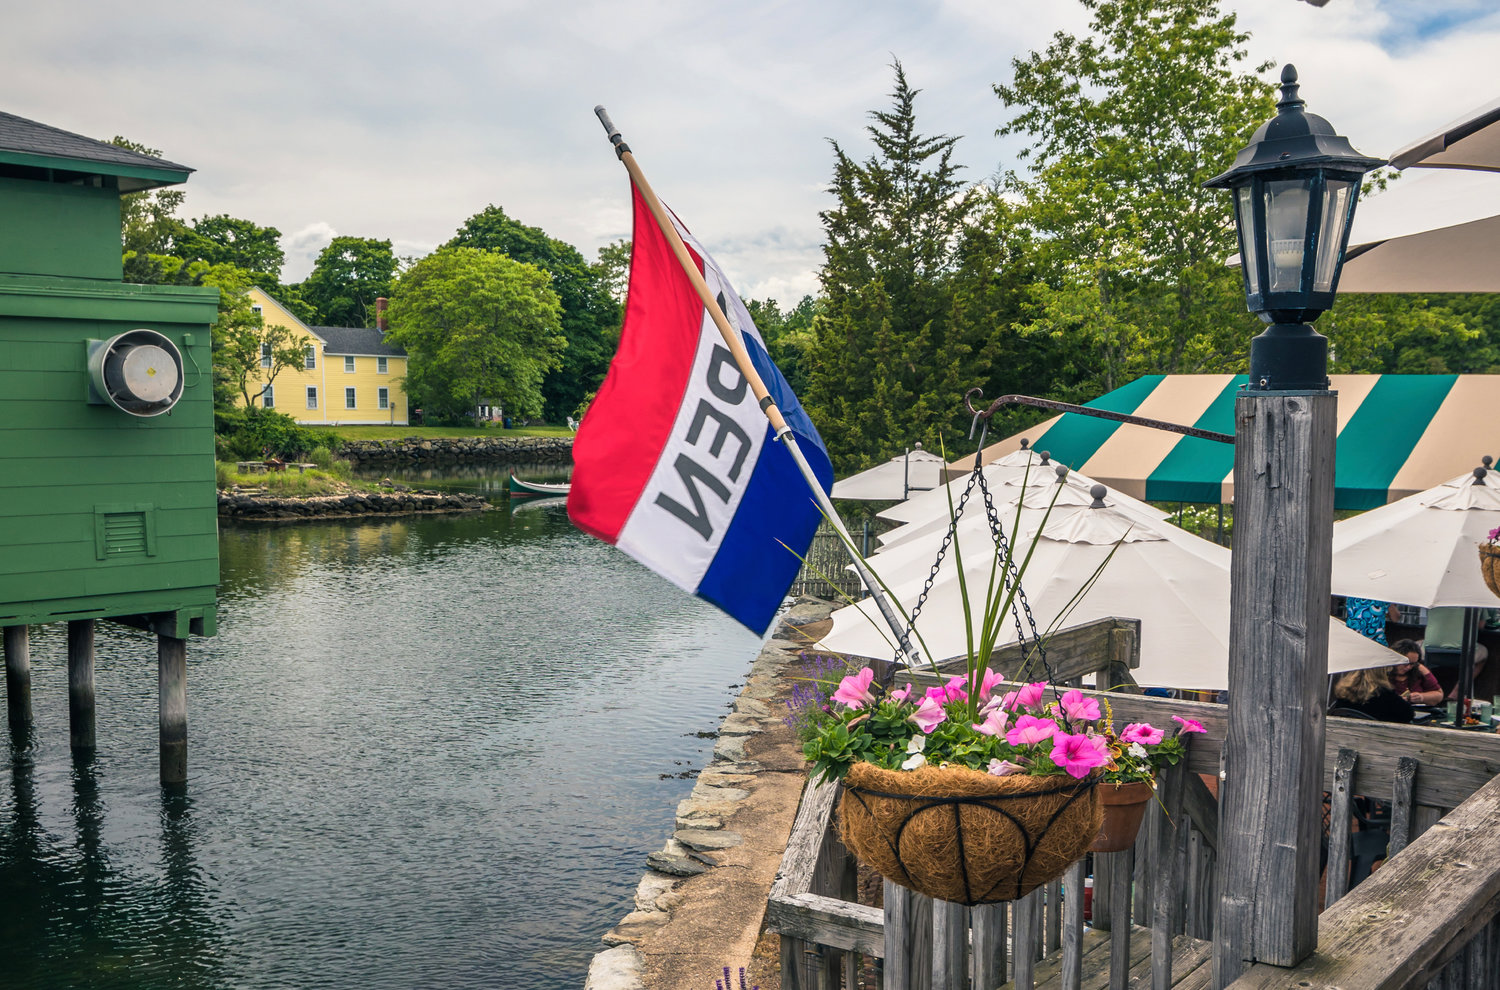 Housed in an historic building, Tavern By The Sea overlooks